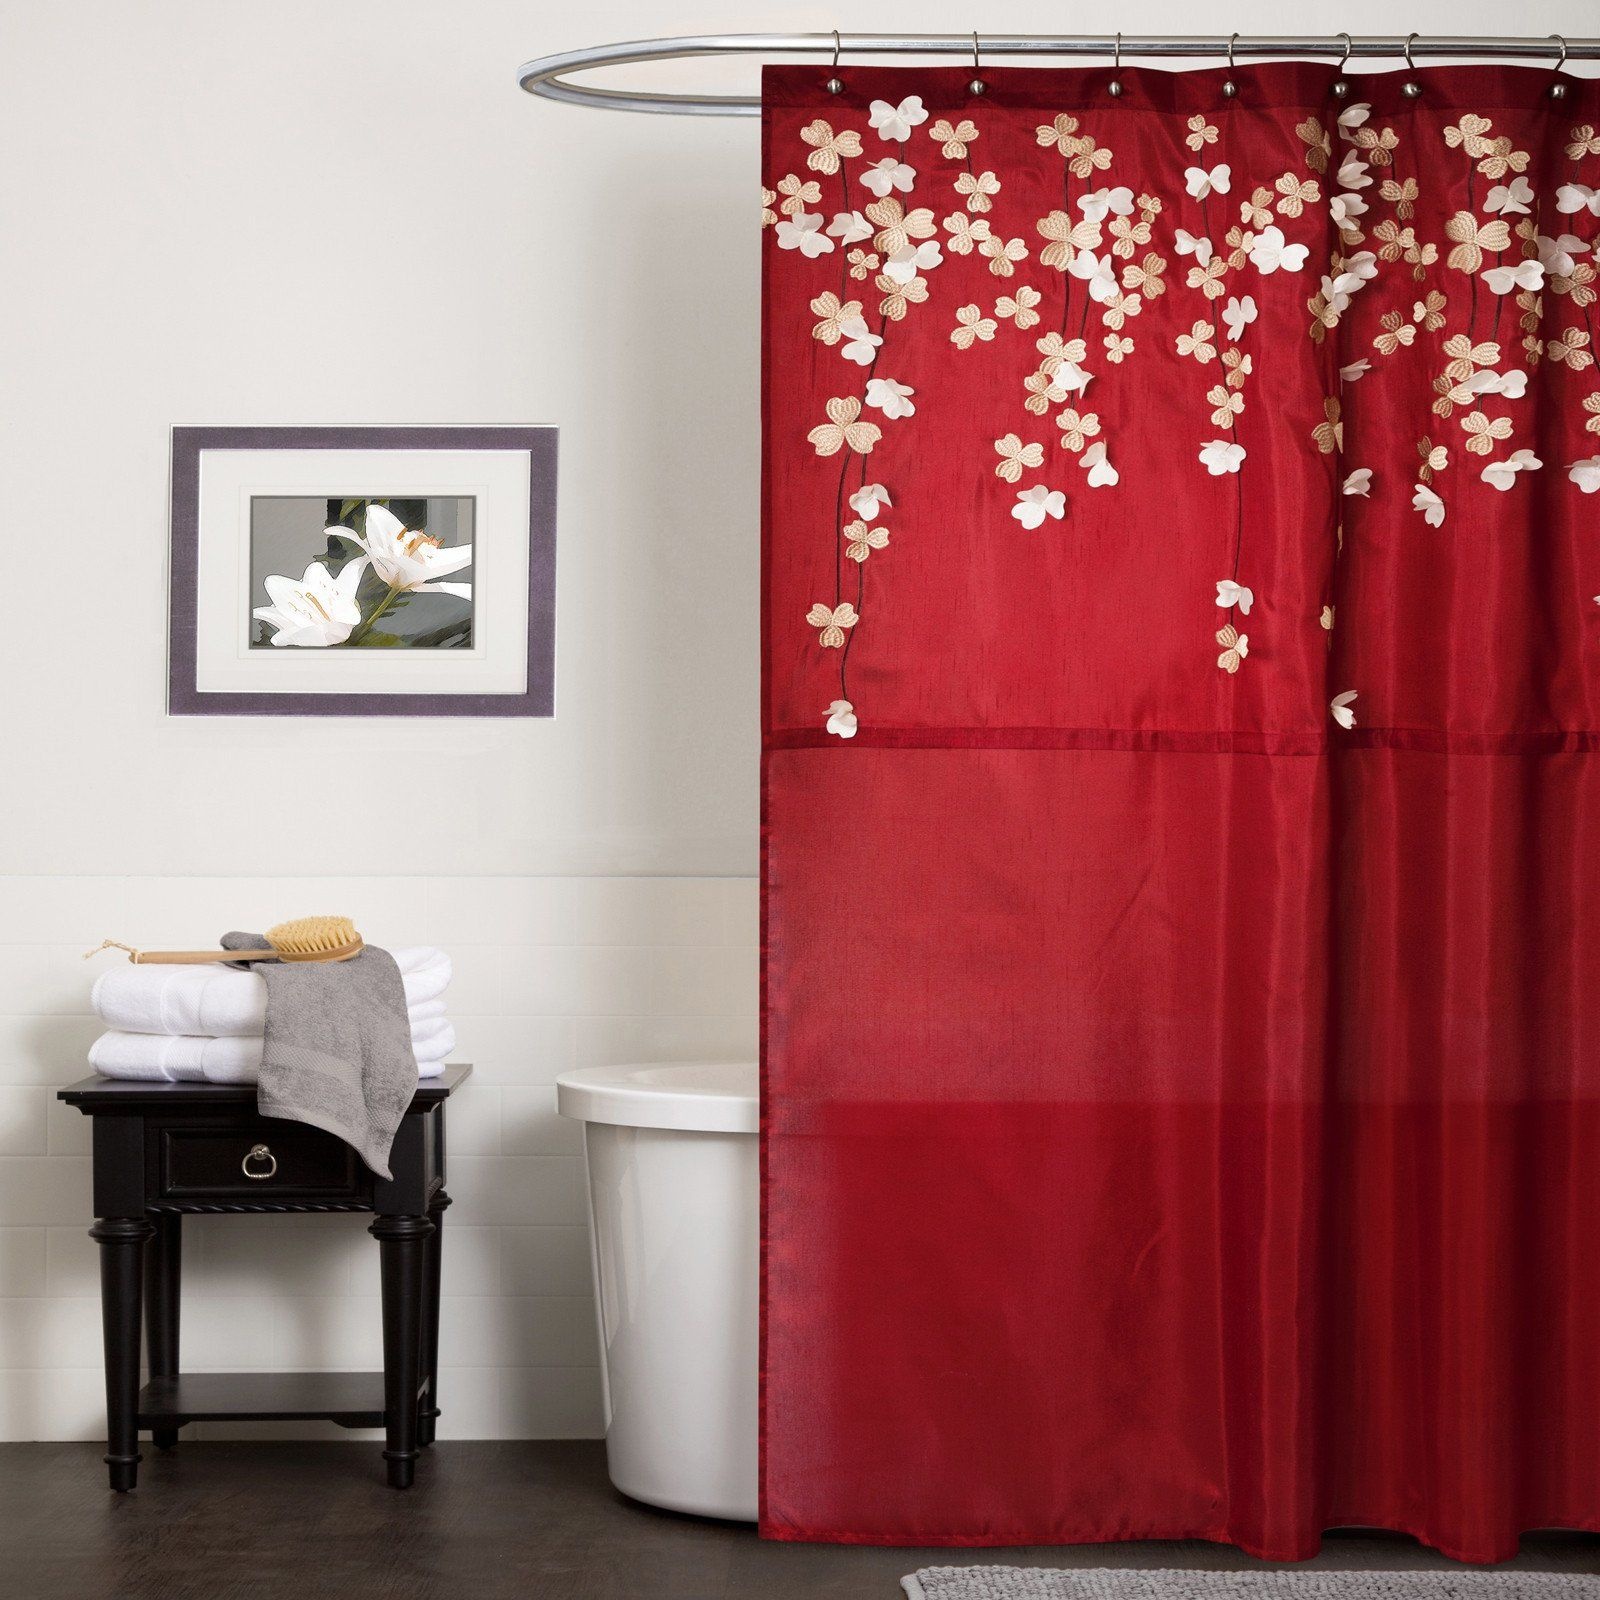 Flower Drops Shower Curtain Red Shower Curtains Red Bathroom Accessories Bathroom Red